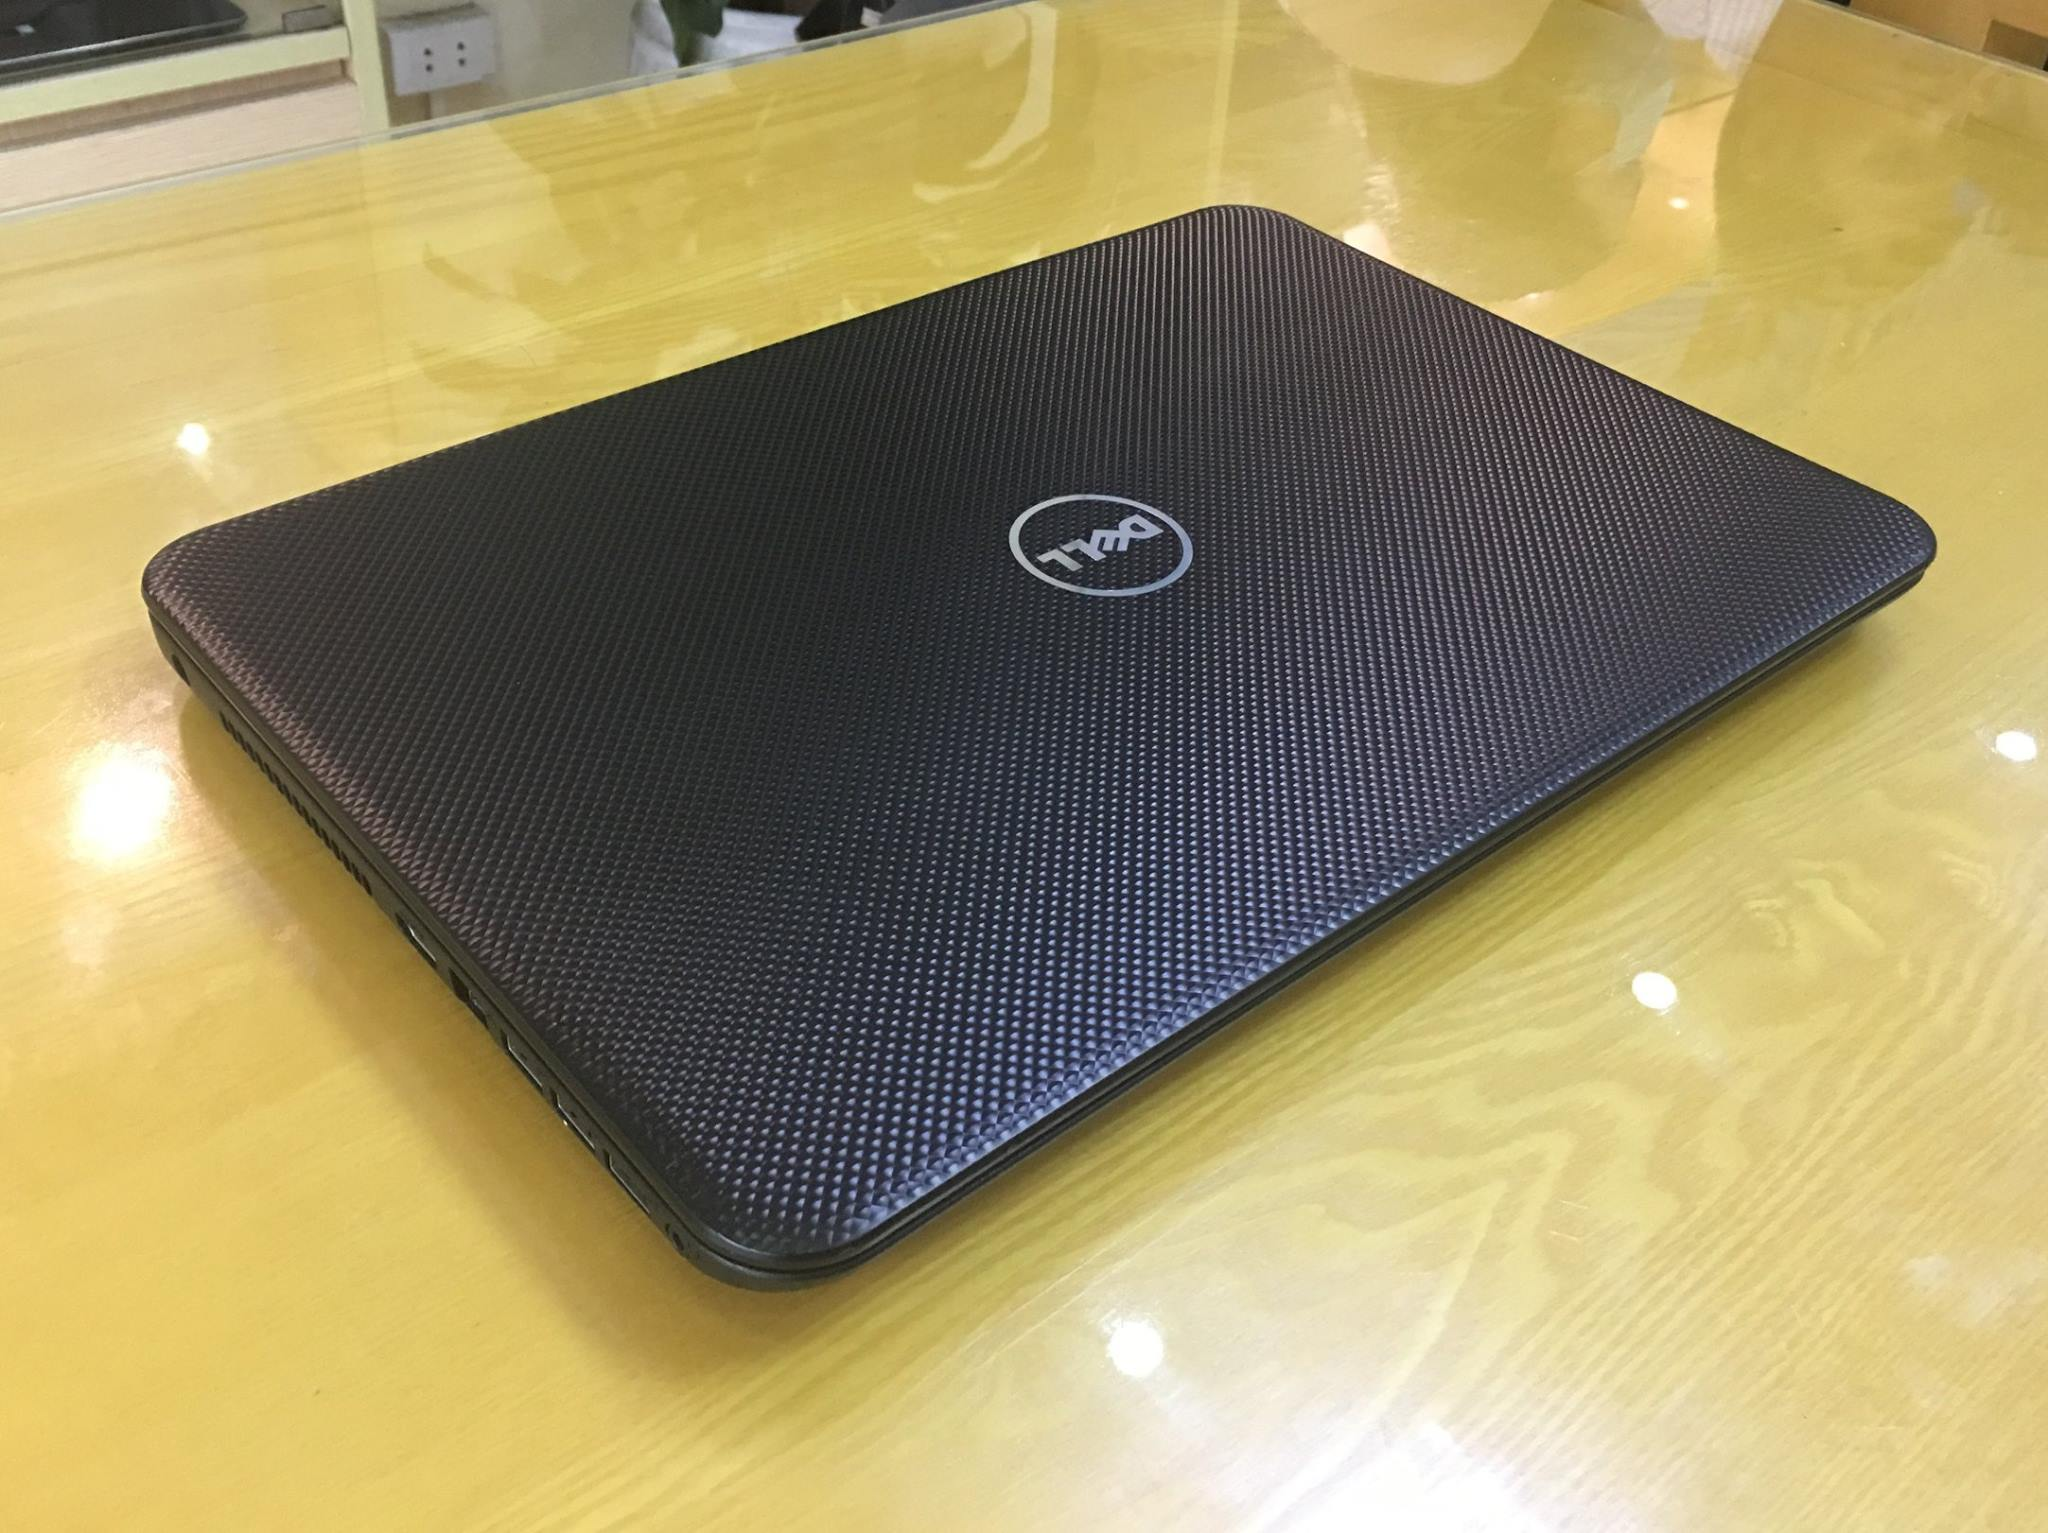 LAPTOP DELL INSPIRON N3537 HASWELL-7.jpg